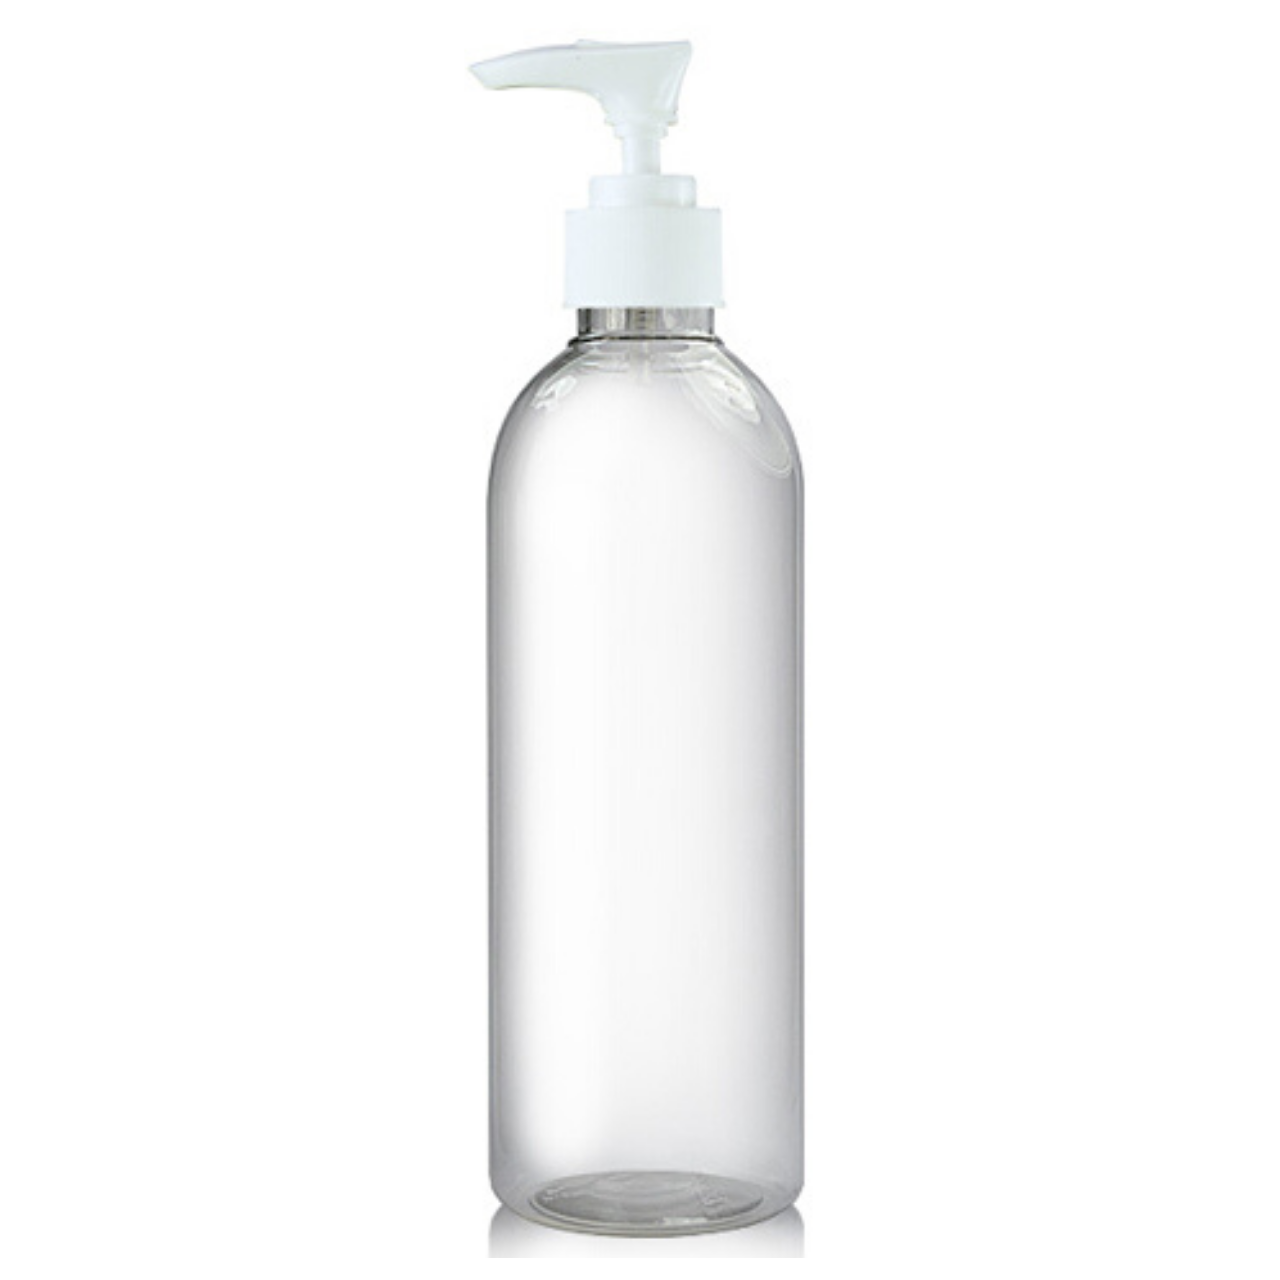 500ml Empty Bottle and Pump Top by  Generise